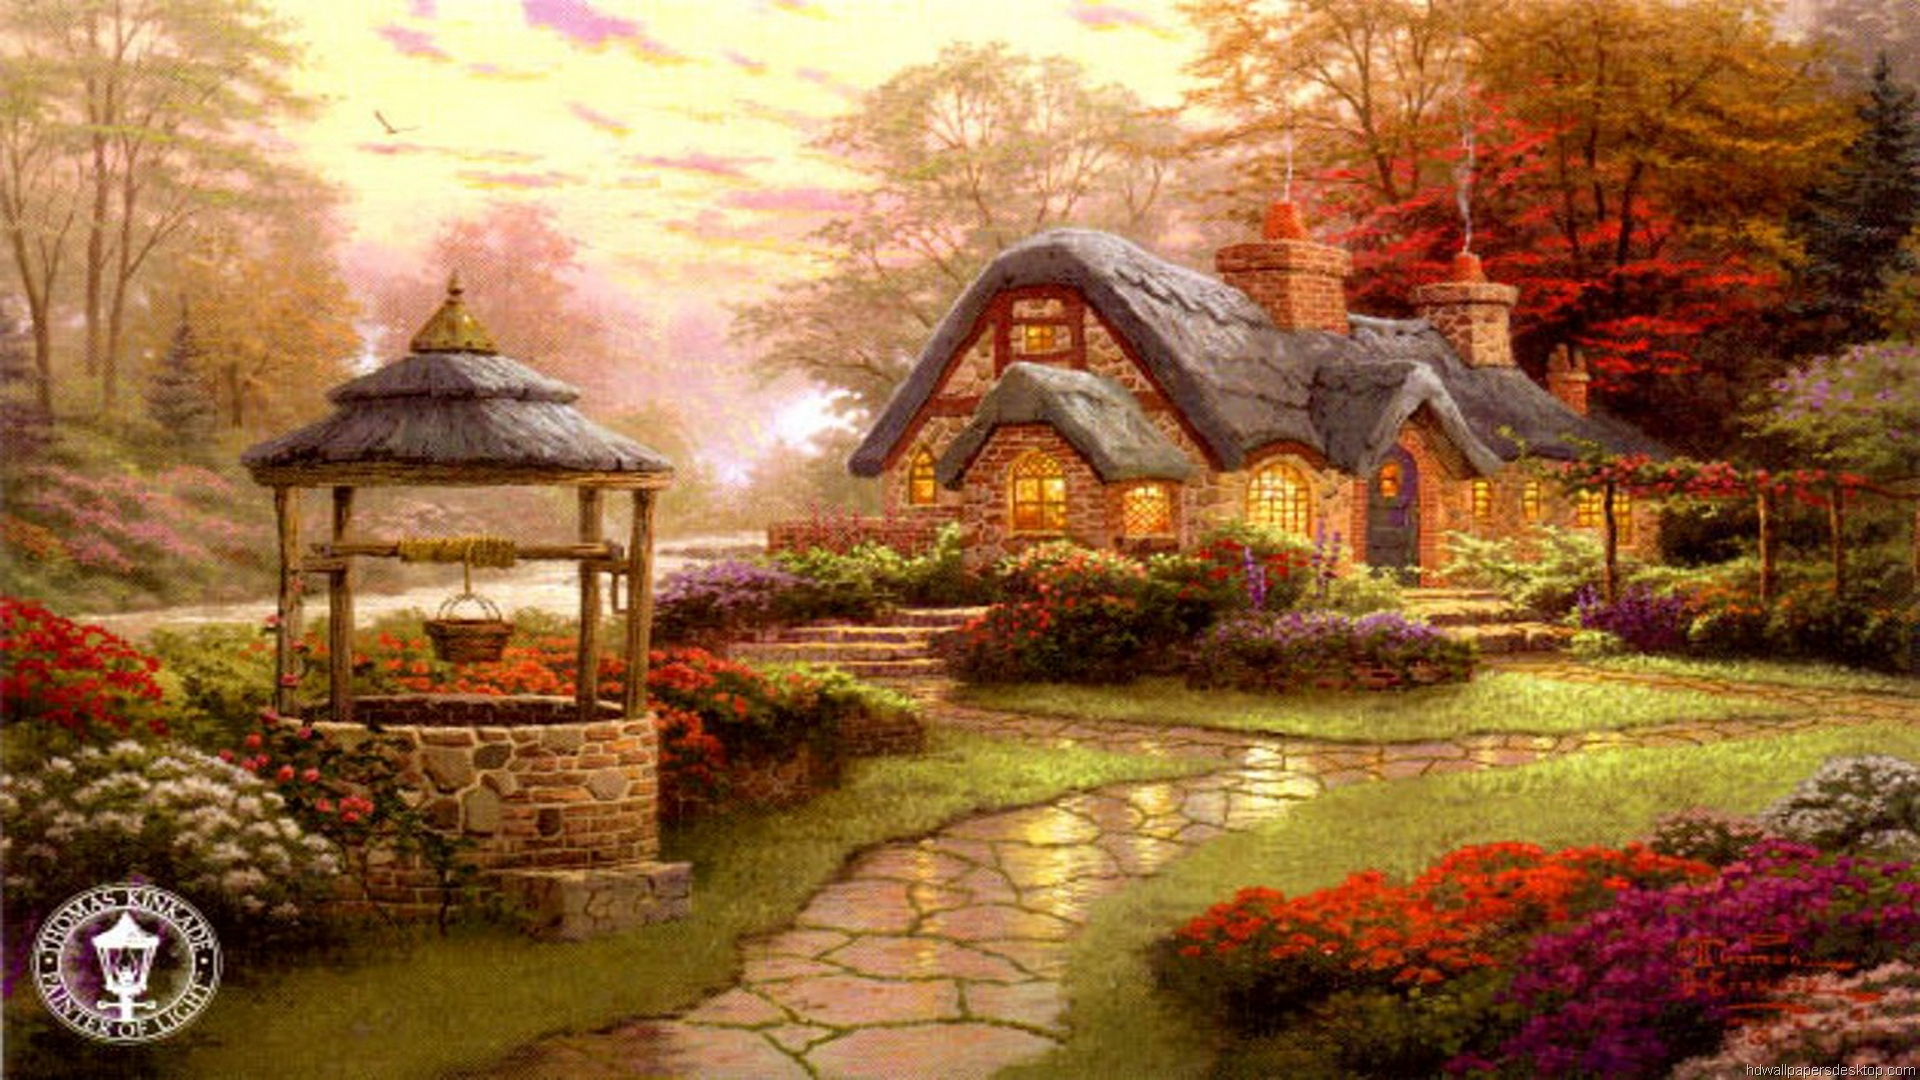 kinkade summer wallpaper drawing - photo #3